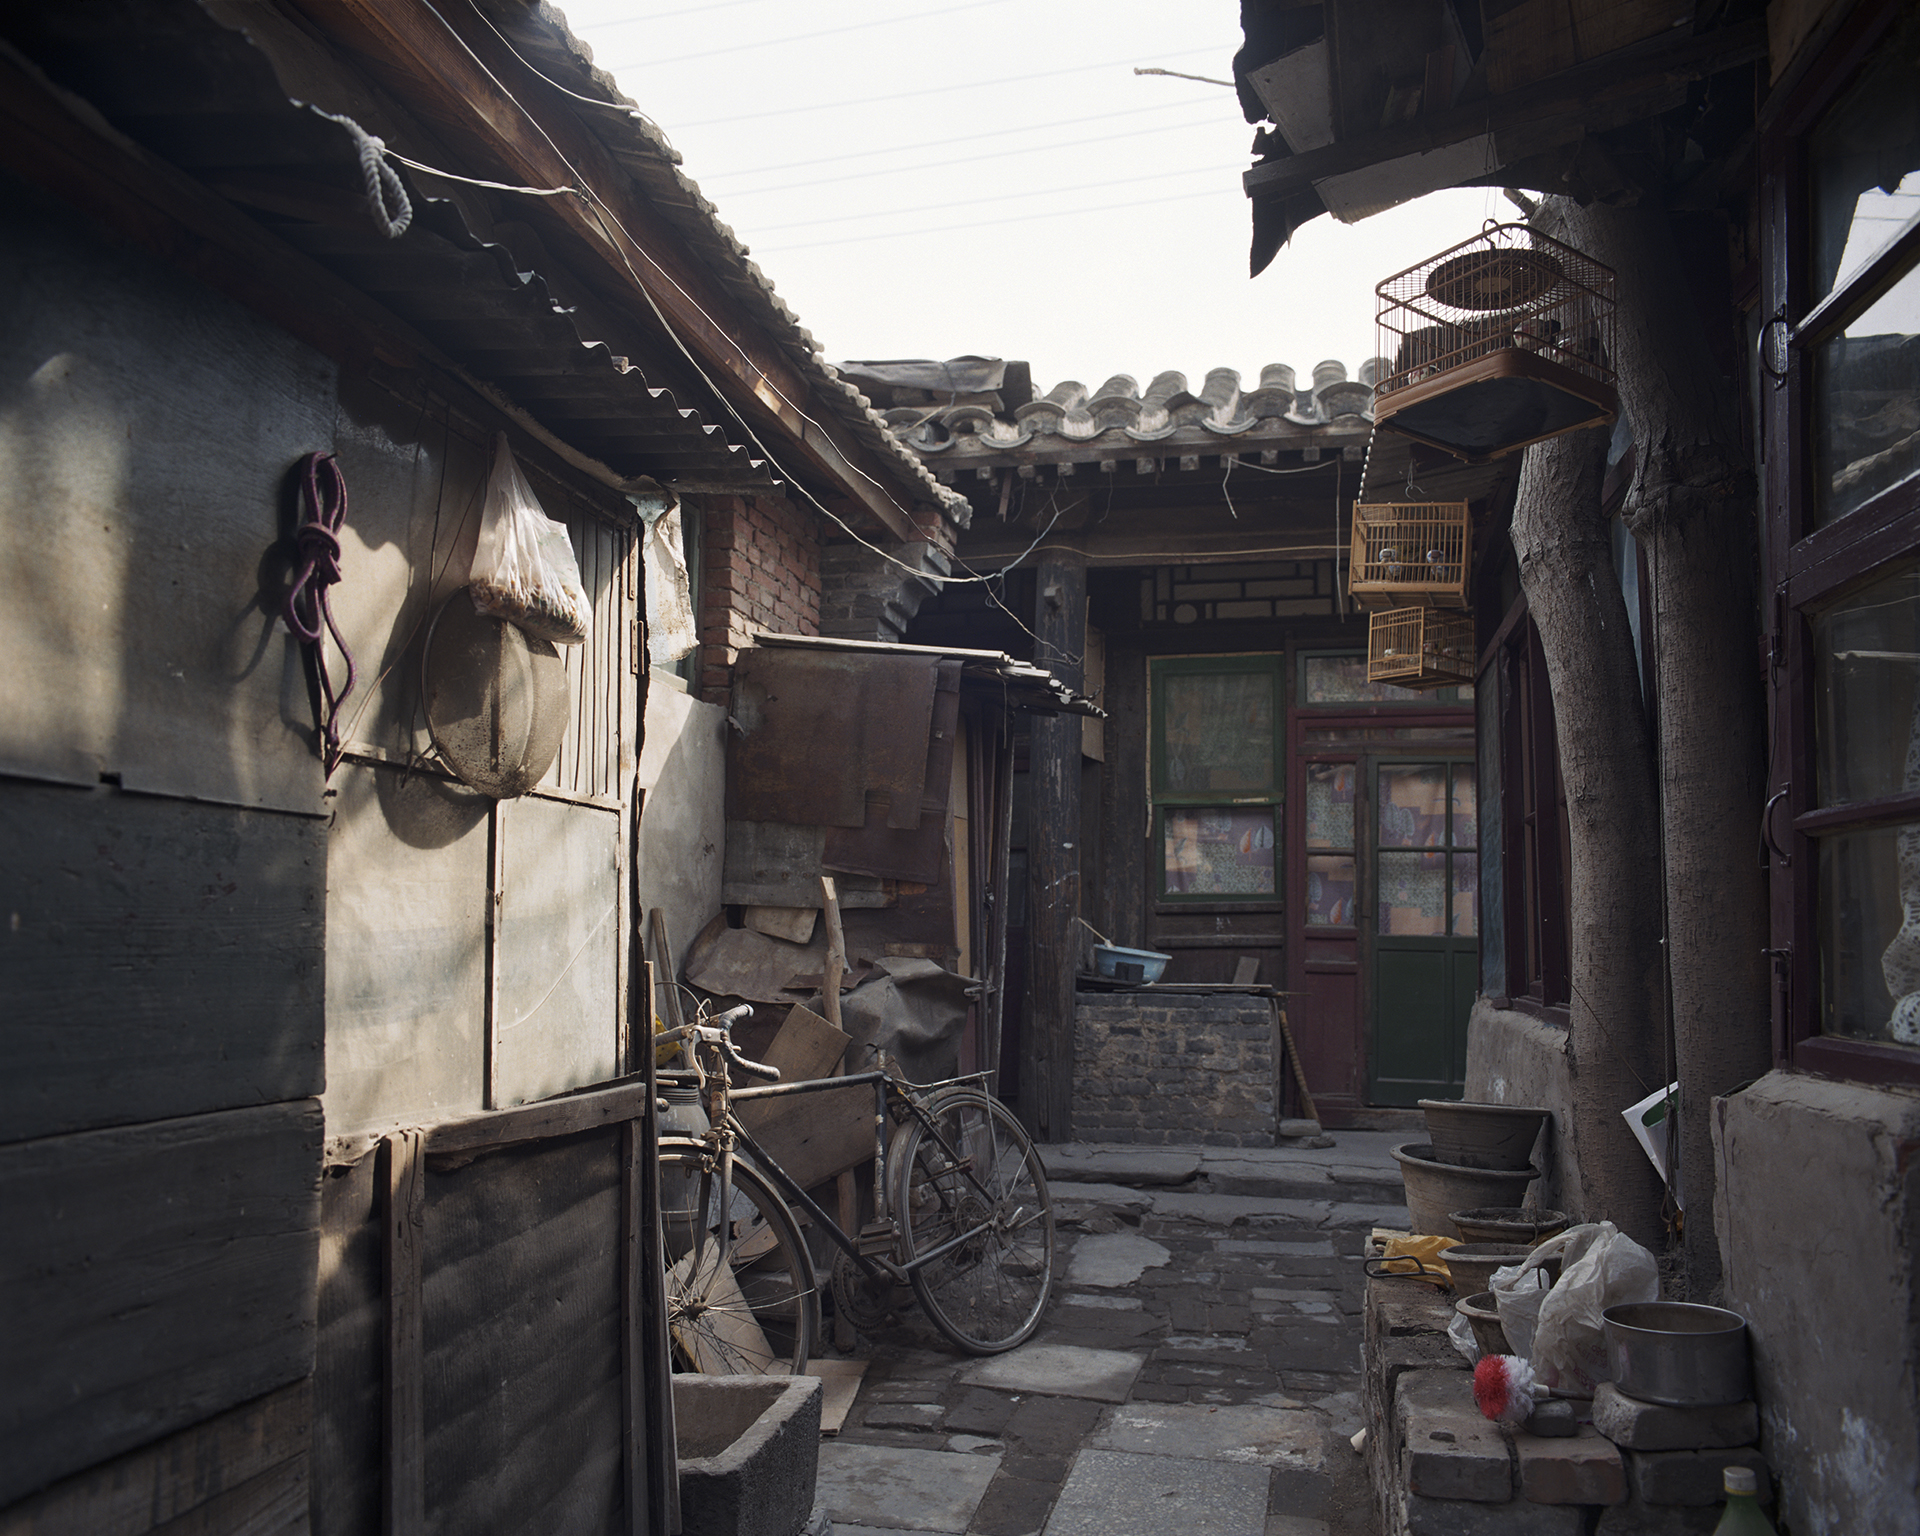 A small alley in a hutong in Beijing